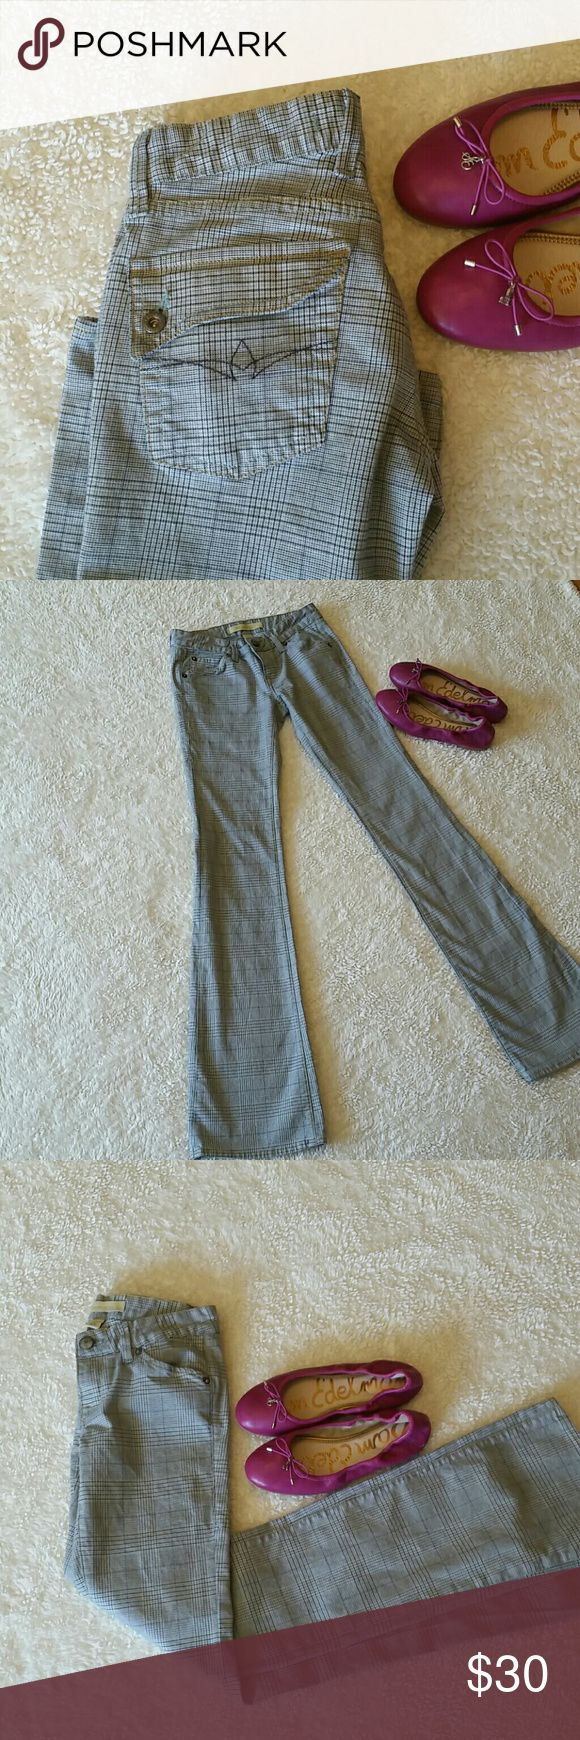 Agave Nectar Vaquera Sexy Flare plaid pants 25 Worn just a few times and laundered gently these retailed for $150 new. Really nice and cute. Agave Nectar  Pants Boot Cut & Flare